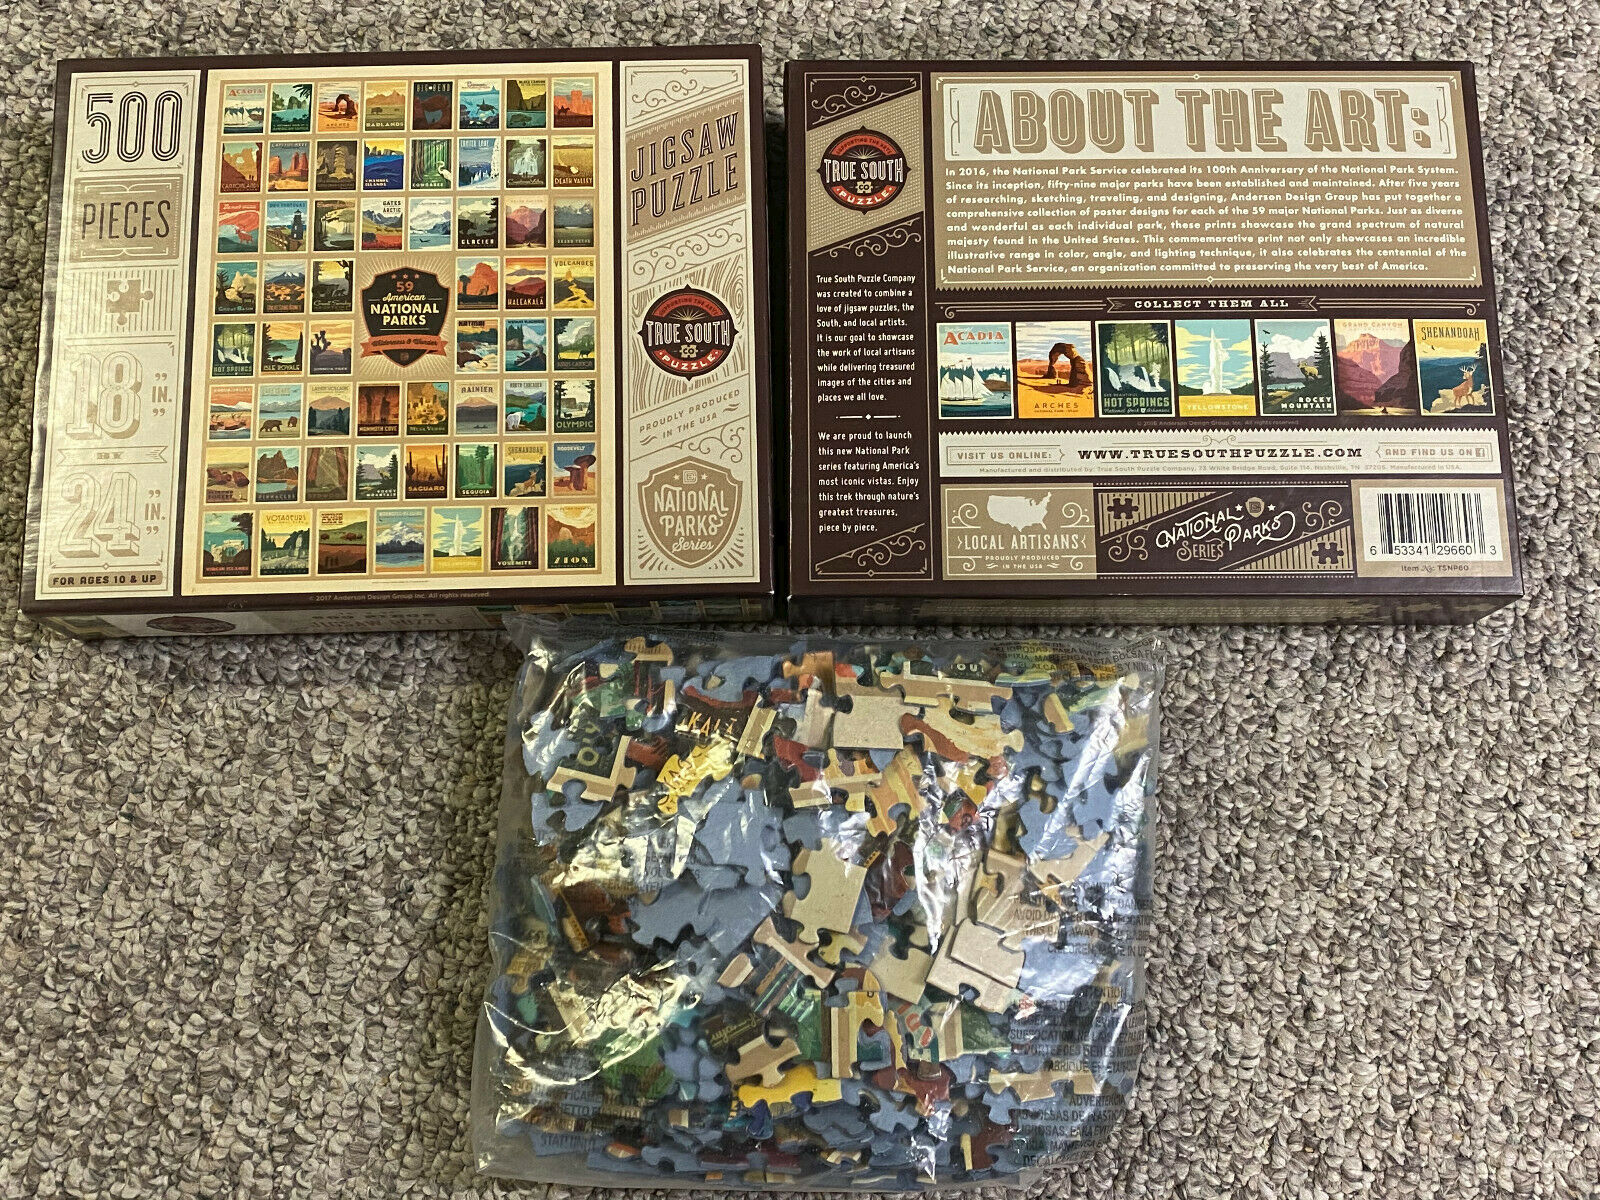 2000 Pieces National Parks of the United States Jigsaw Puzzle